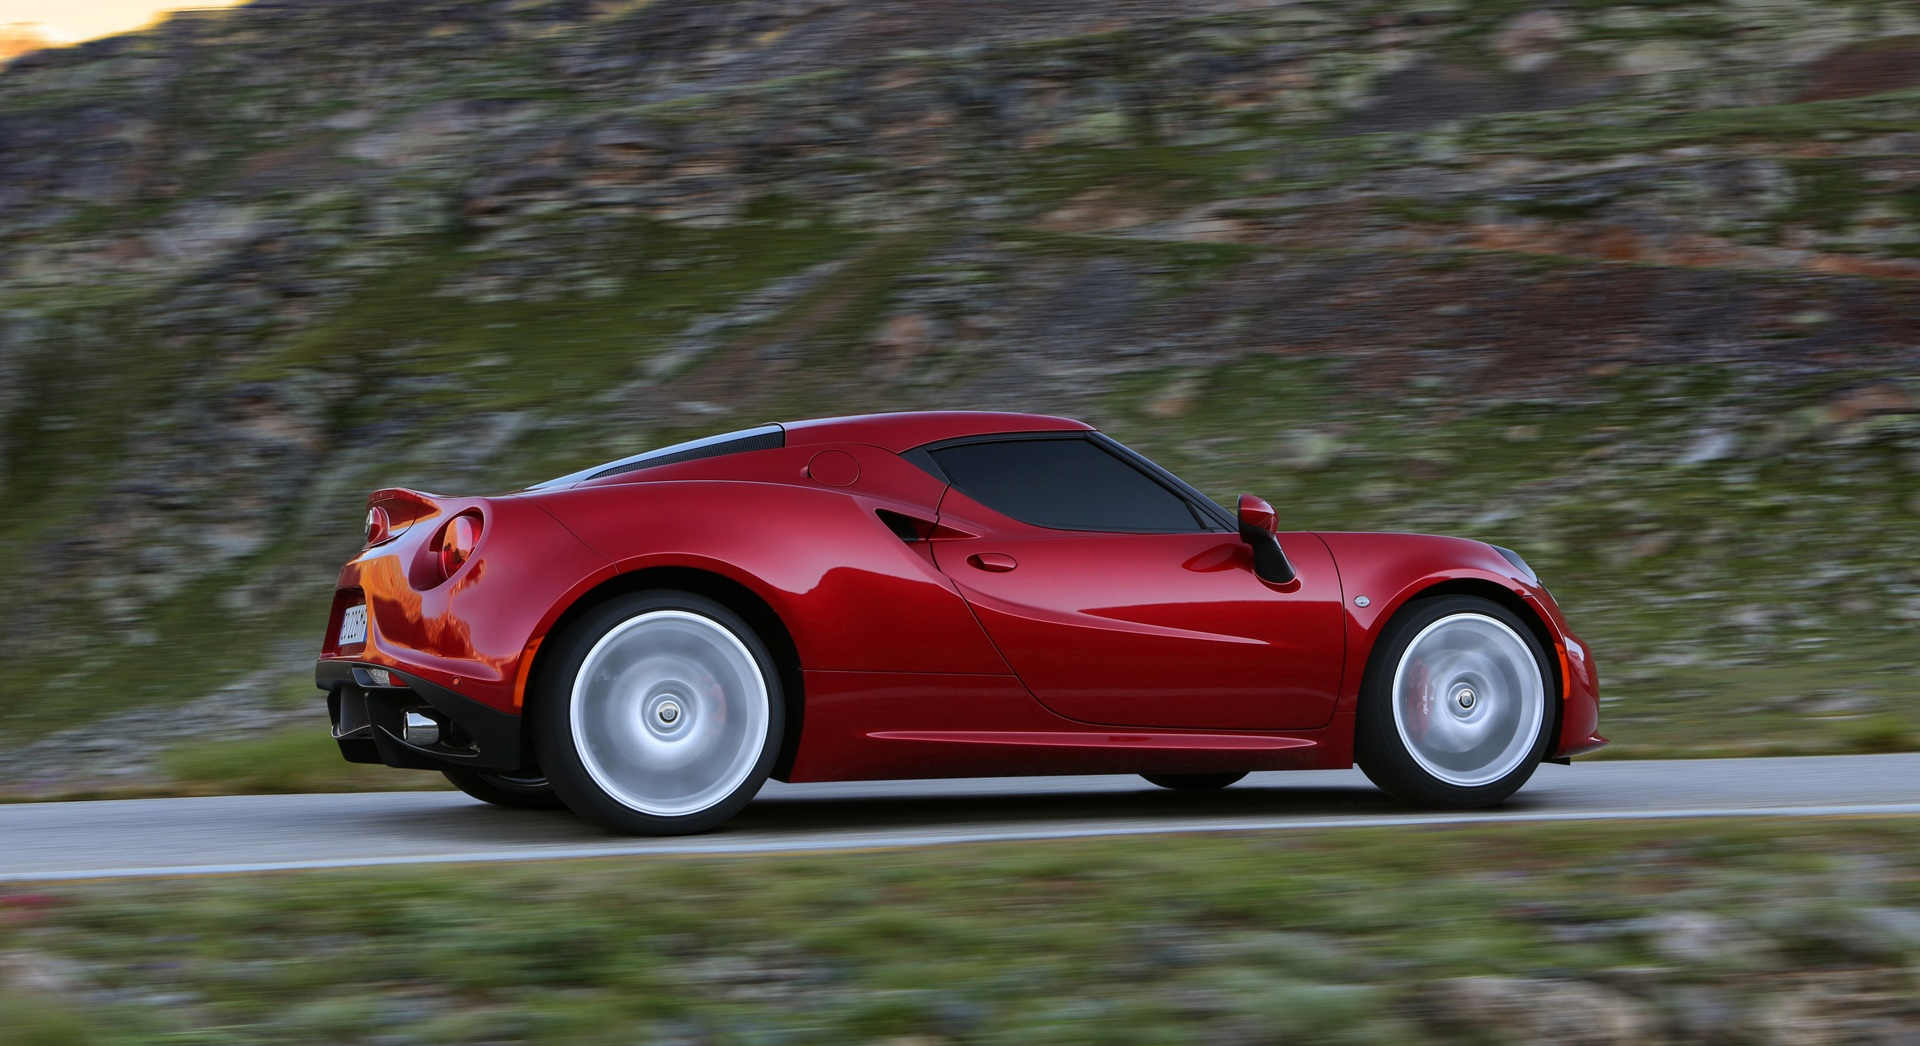 2014 Alfa Romeo 4c Test Drive (Photo 6 of 25)